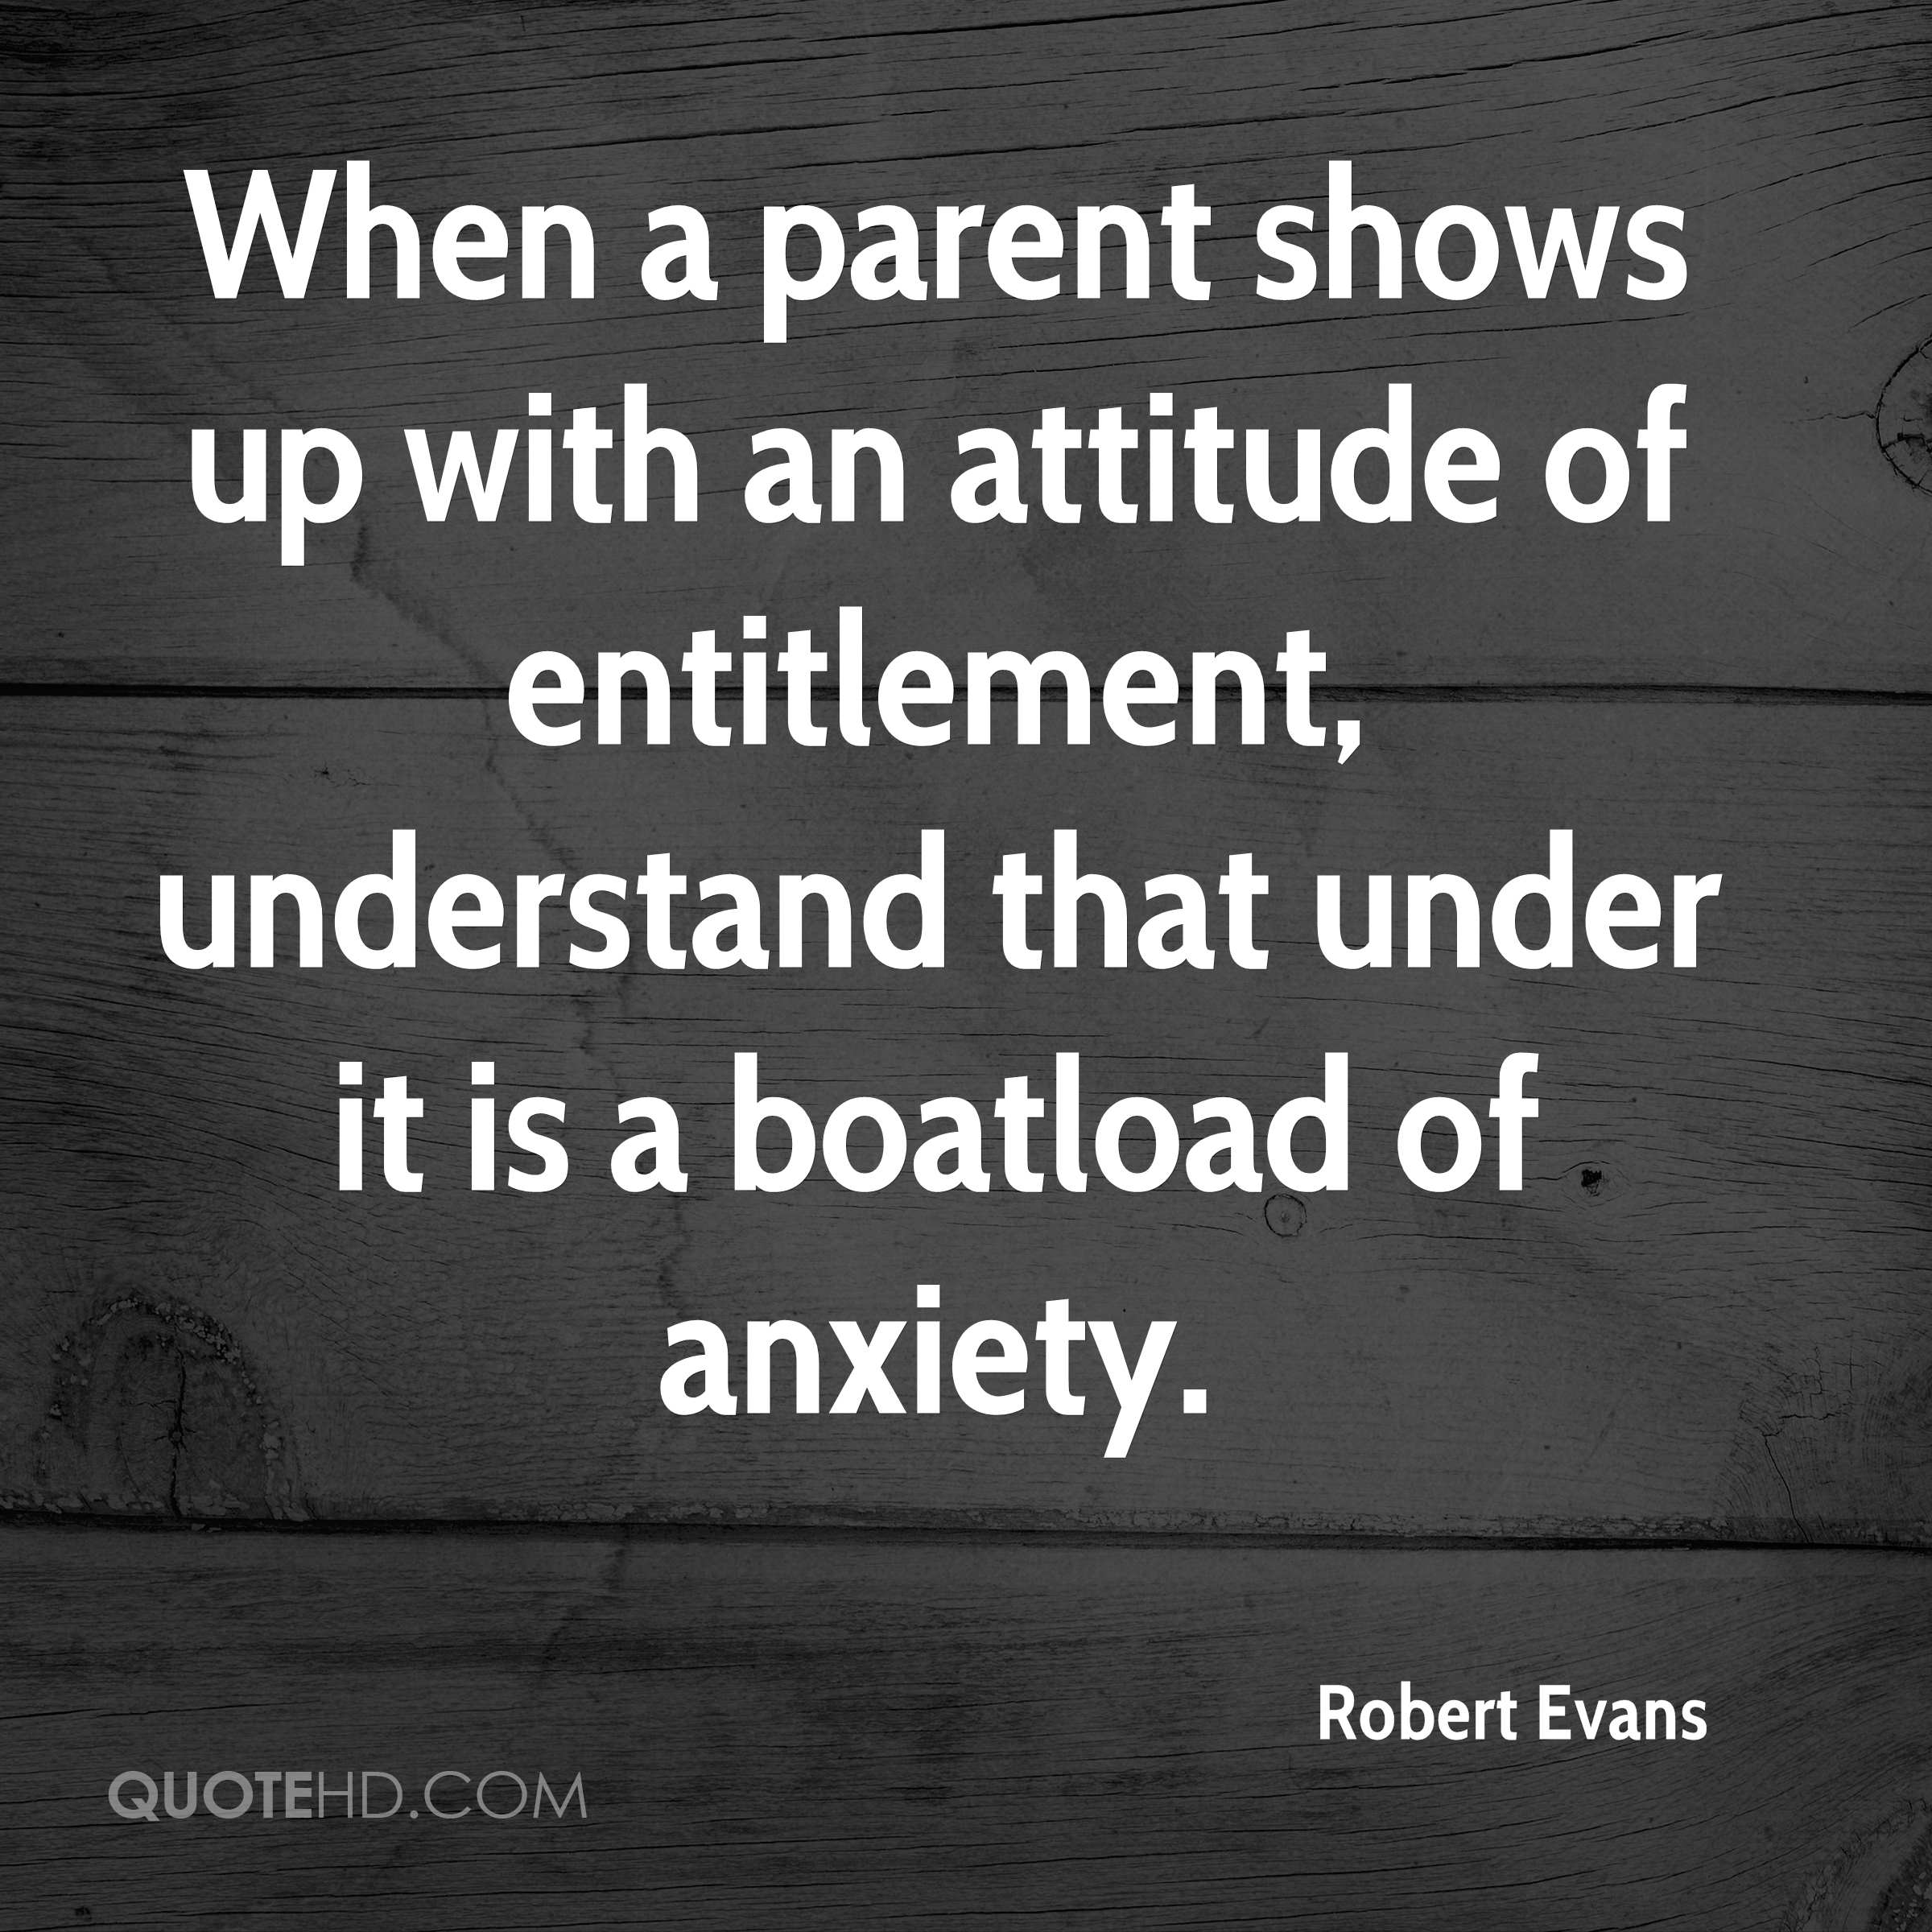 When a parent shows up with an attitude of entitlement, understand that under it is a boatload of anxiety.